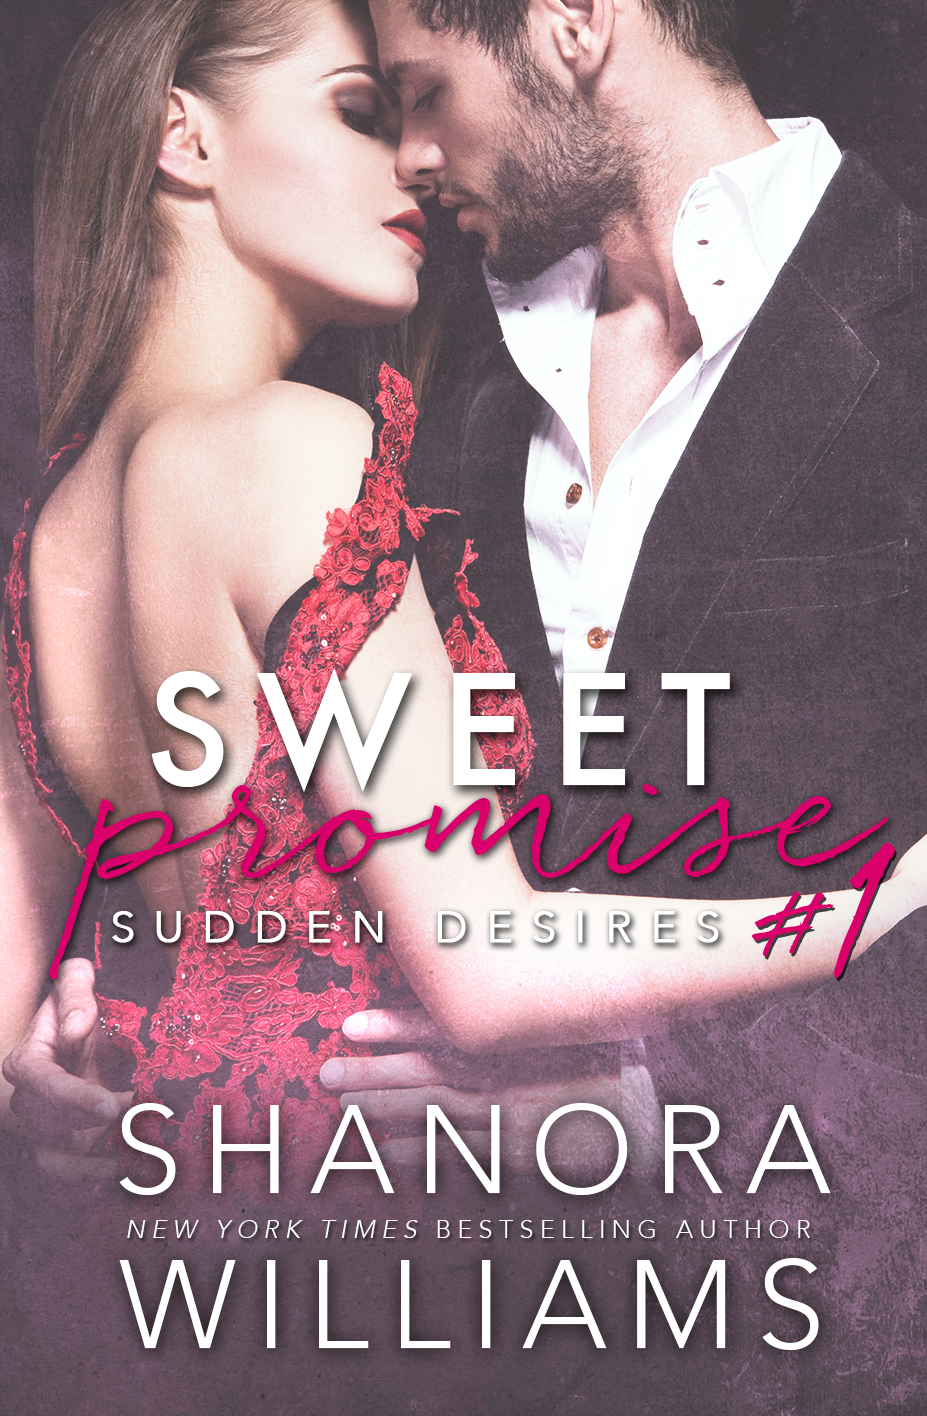 Copy of SWEET PROMISE MOCK UP 2